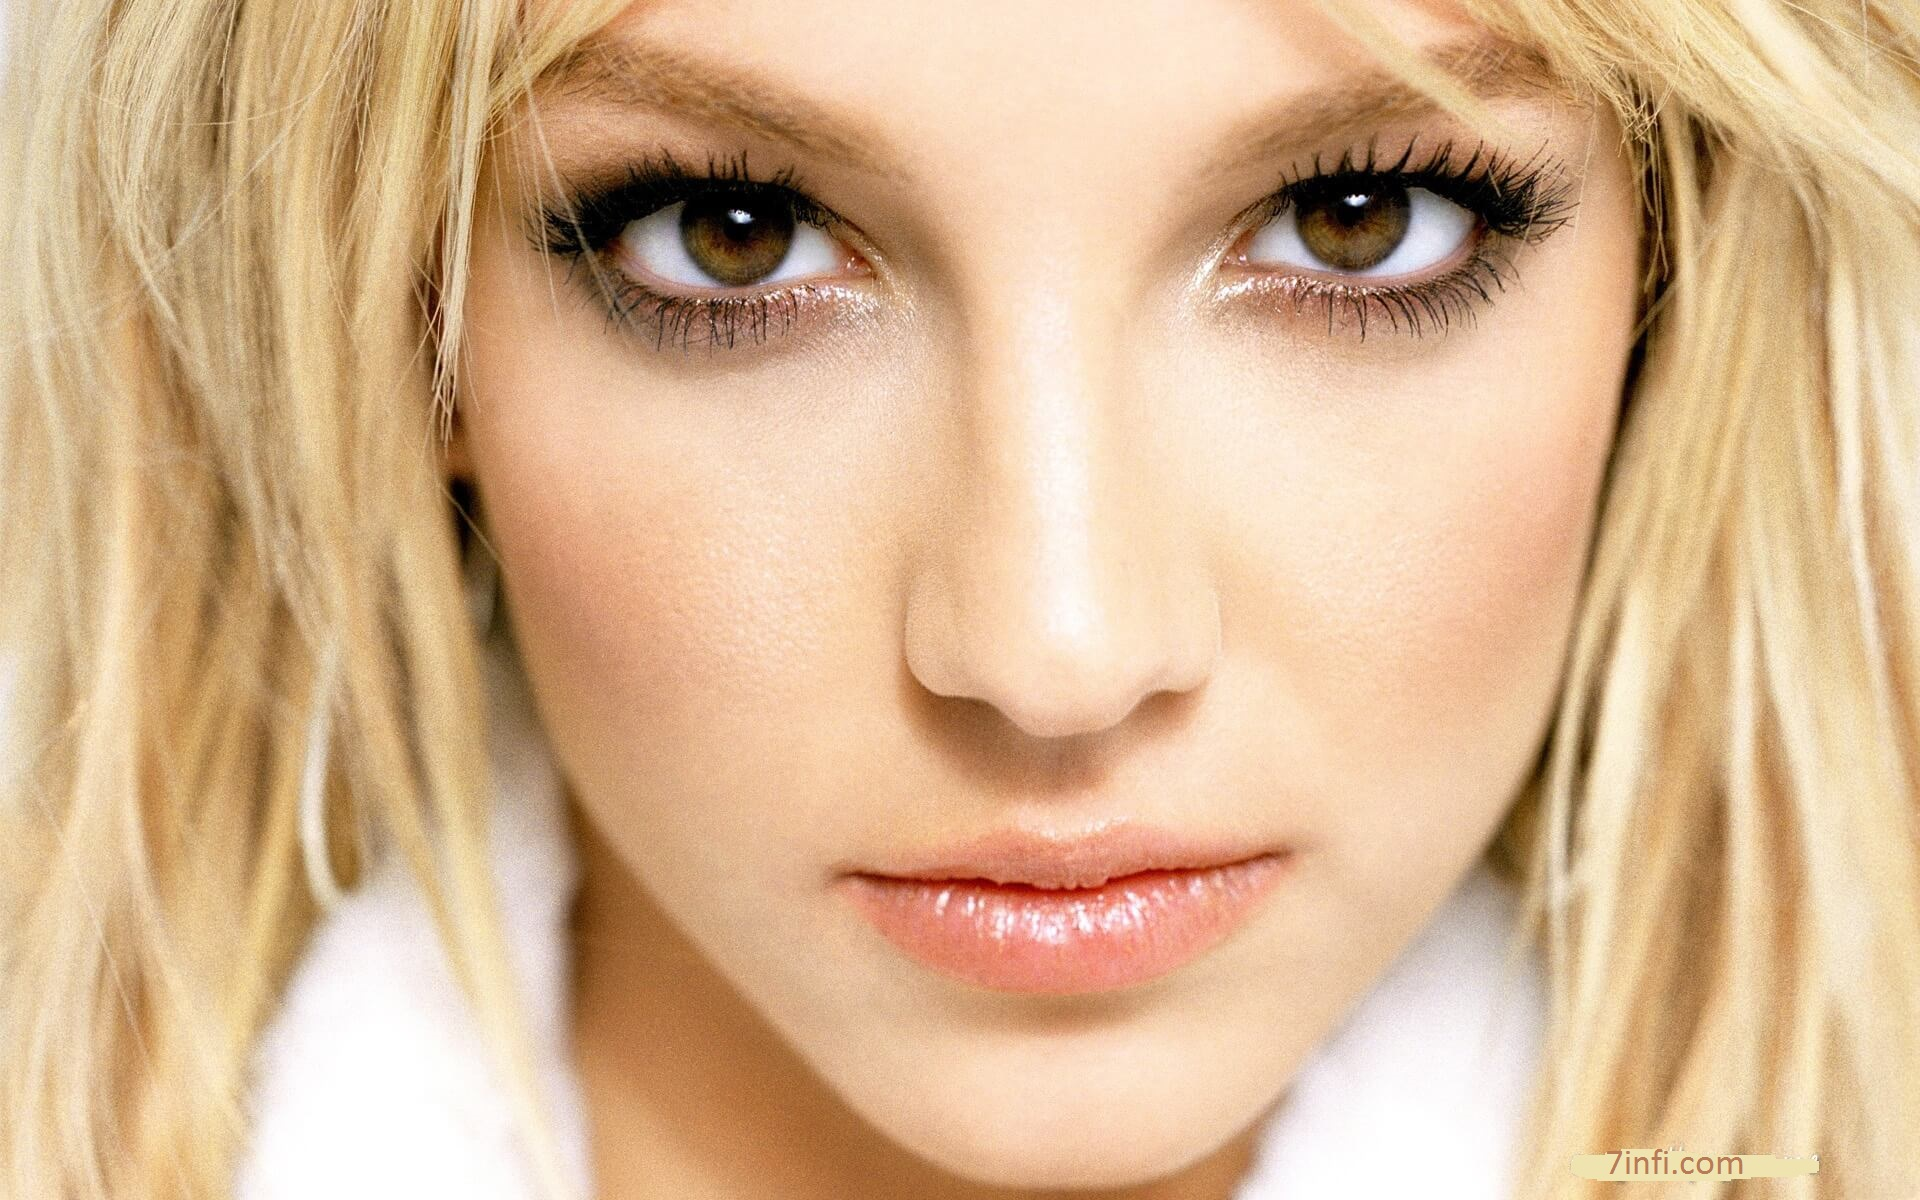 Britney Biography, Age, Weight, Height, Friend, Like, Affairs, Favourite, Birthdate & Other